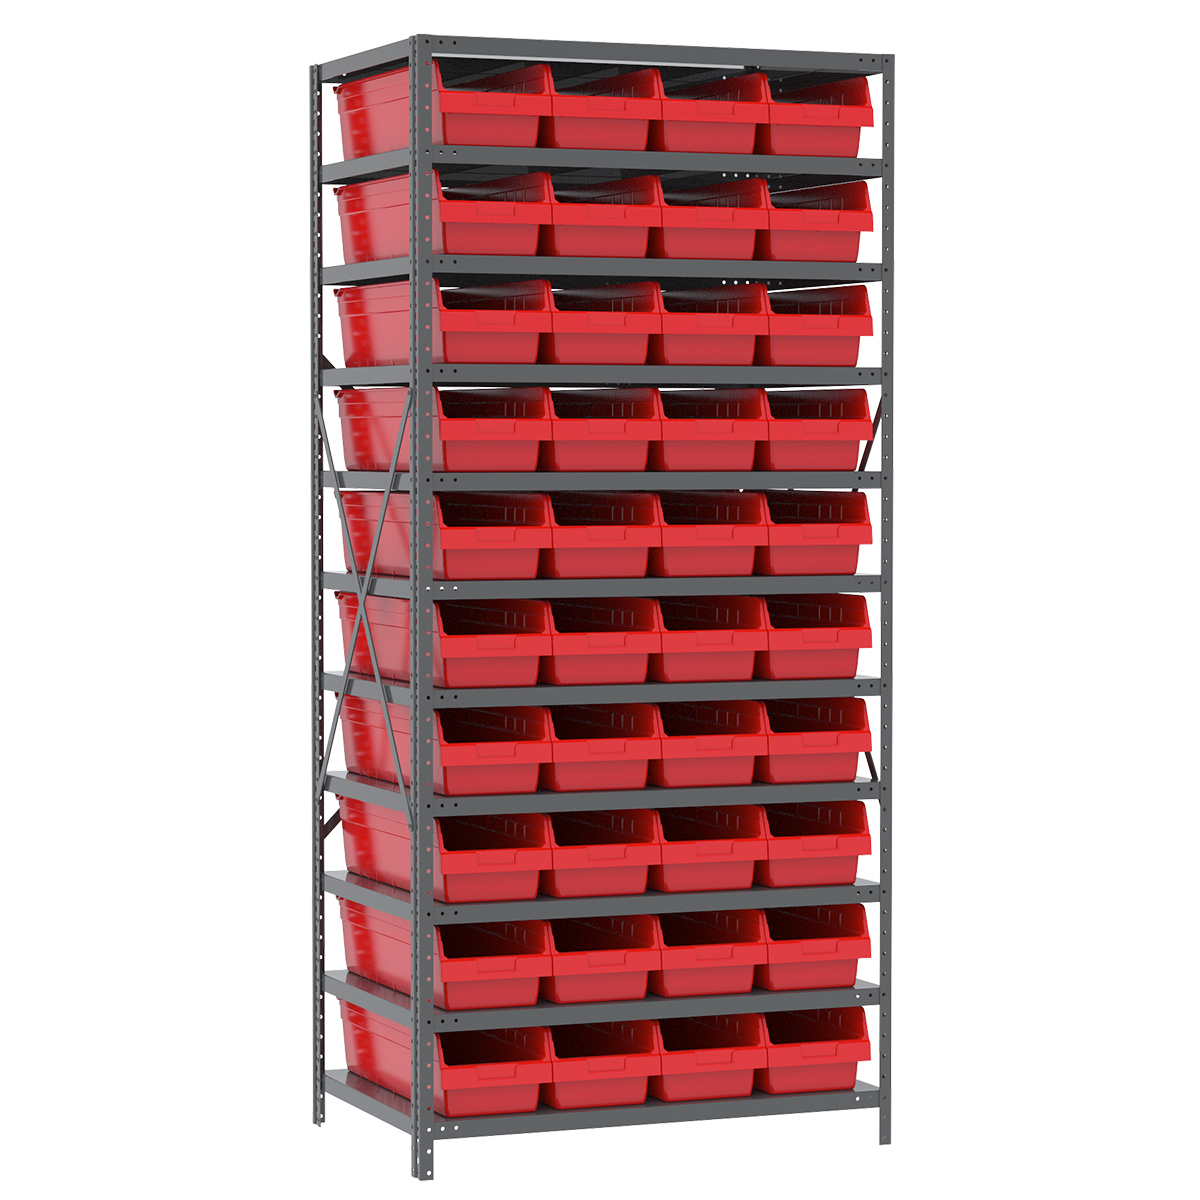 Steel Shelving Kit, 24x36x79, 42 Bins, Gray/Red.  This item sold in carton quantities of 1.